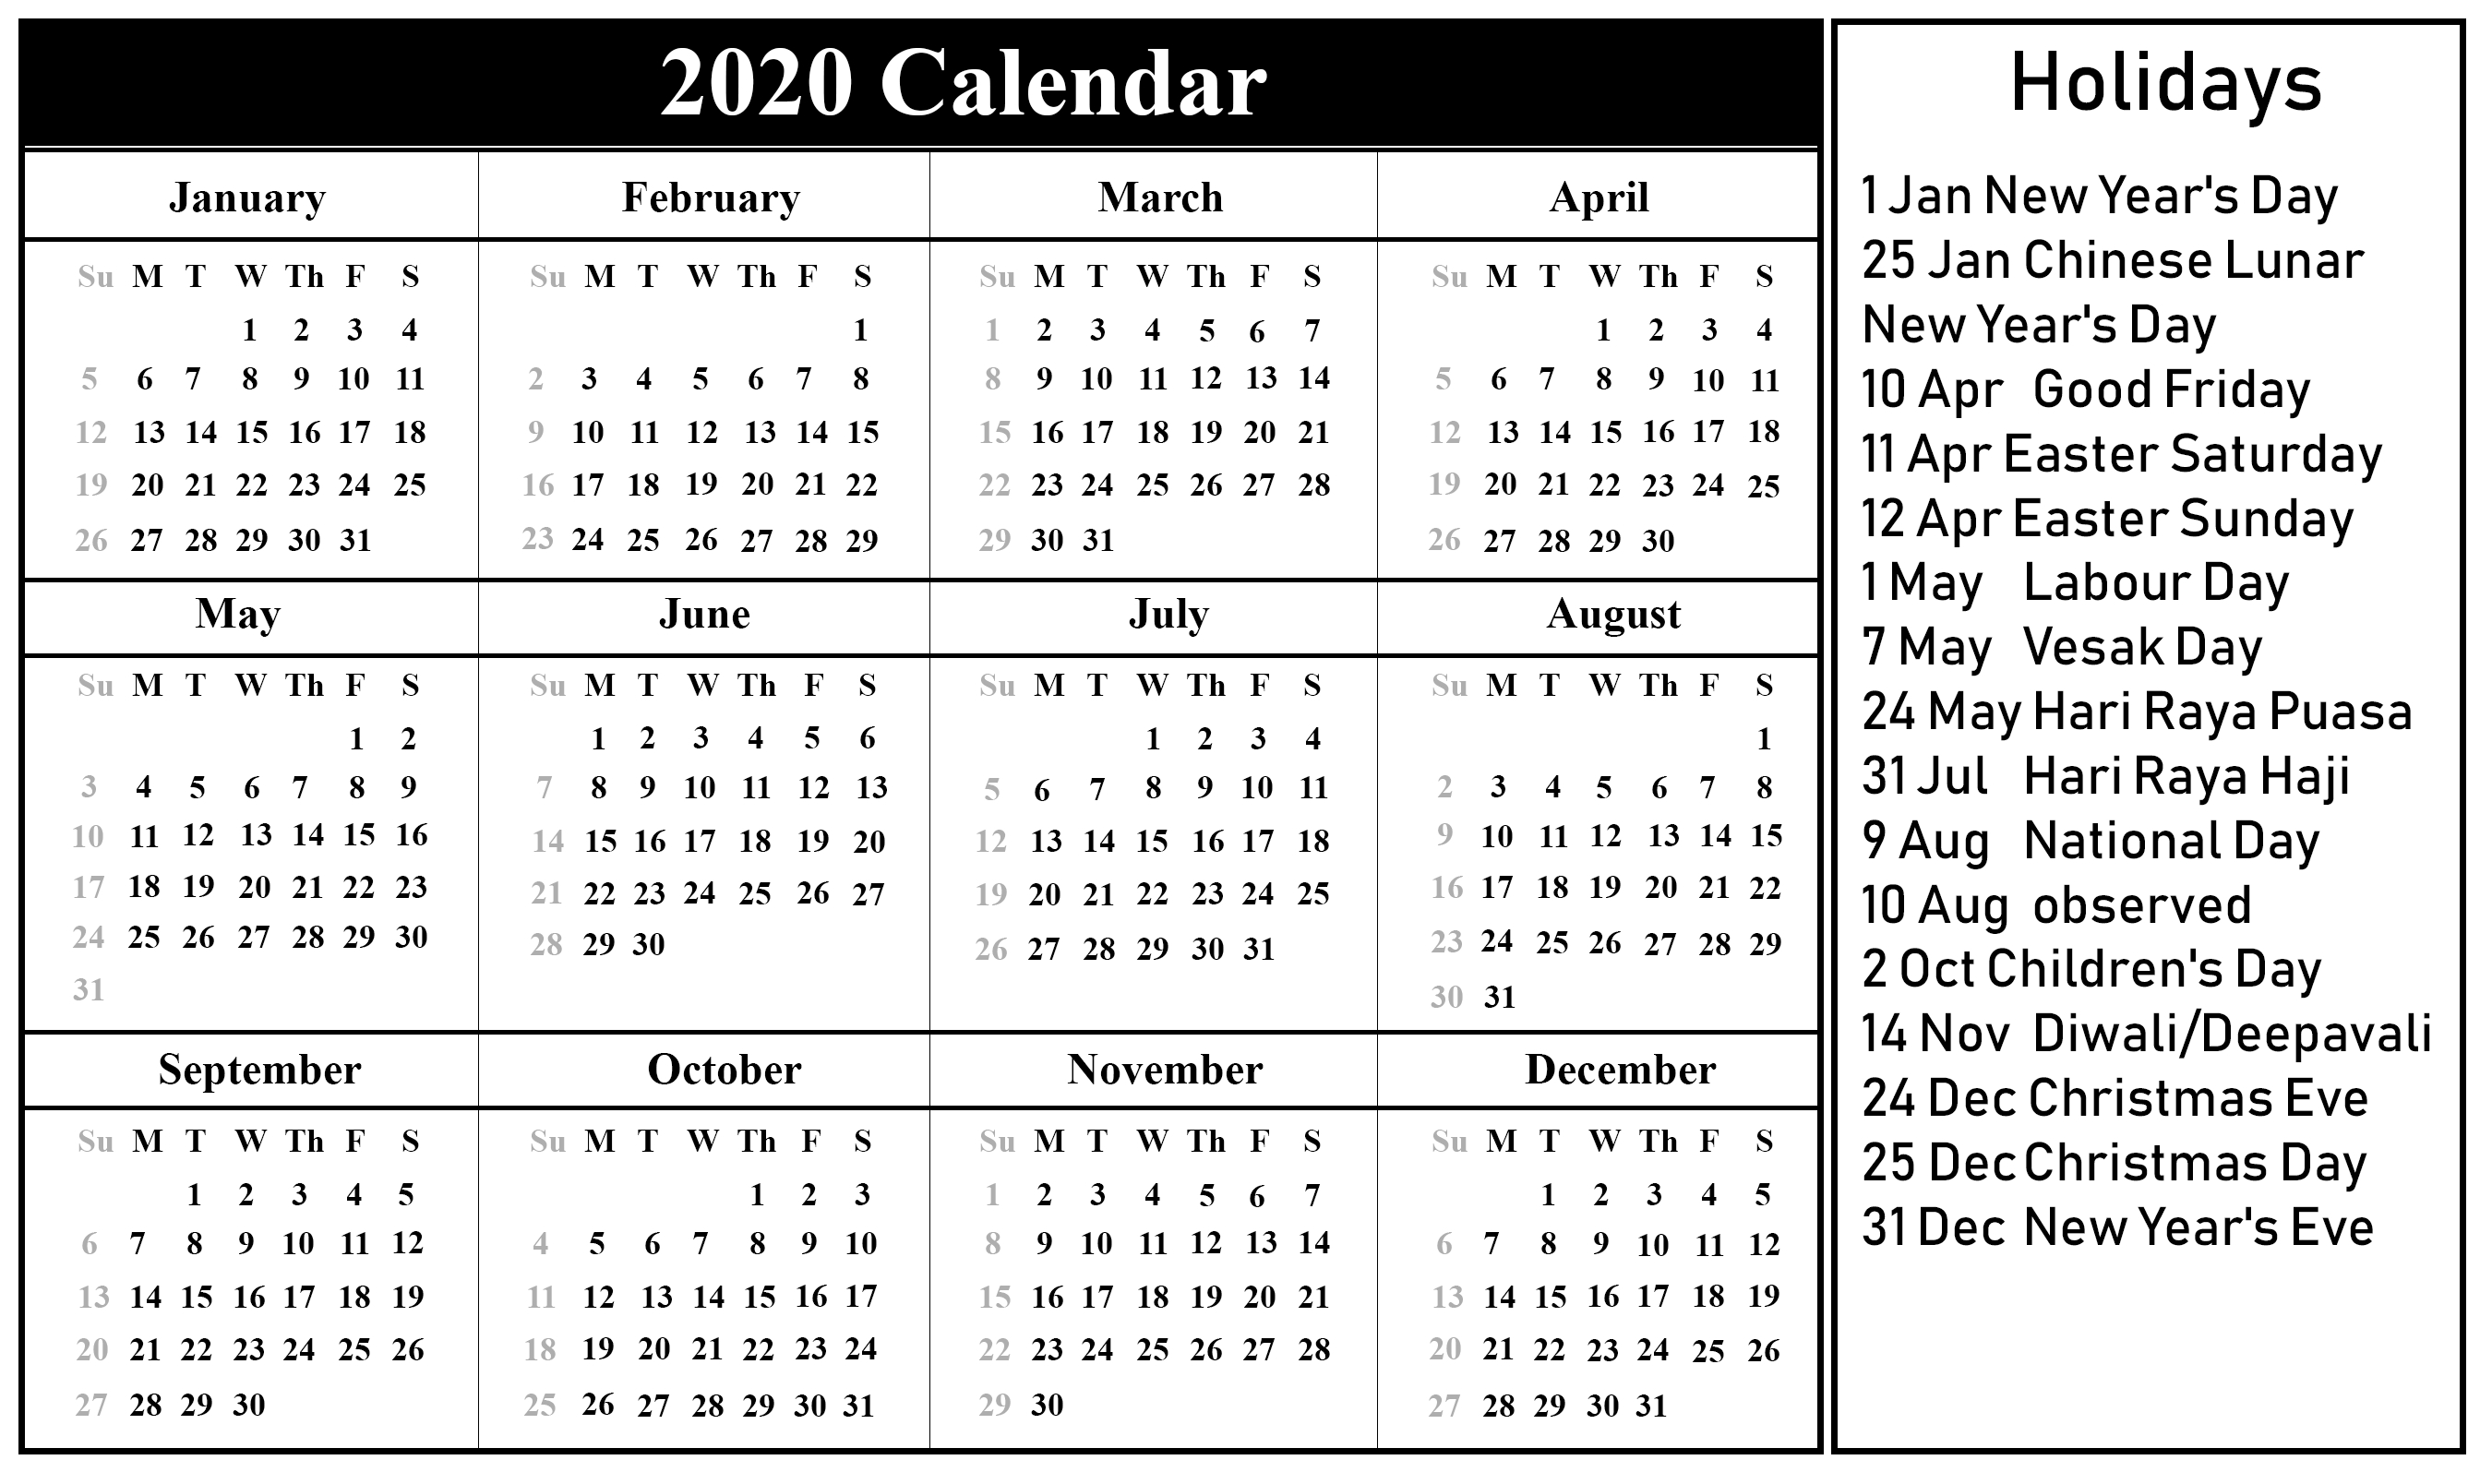 November 2020 Calendar Us Holidays - Wpa.wpart.co-Printable 2020 Calendar With Holidays Usa